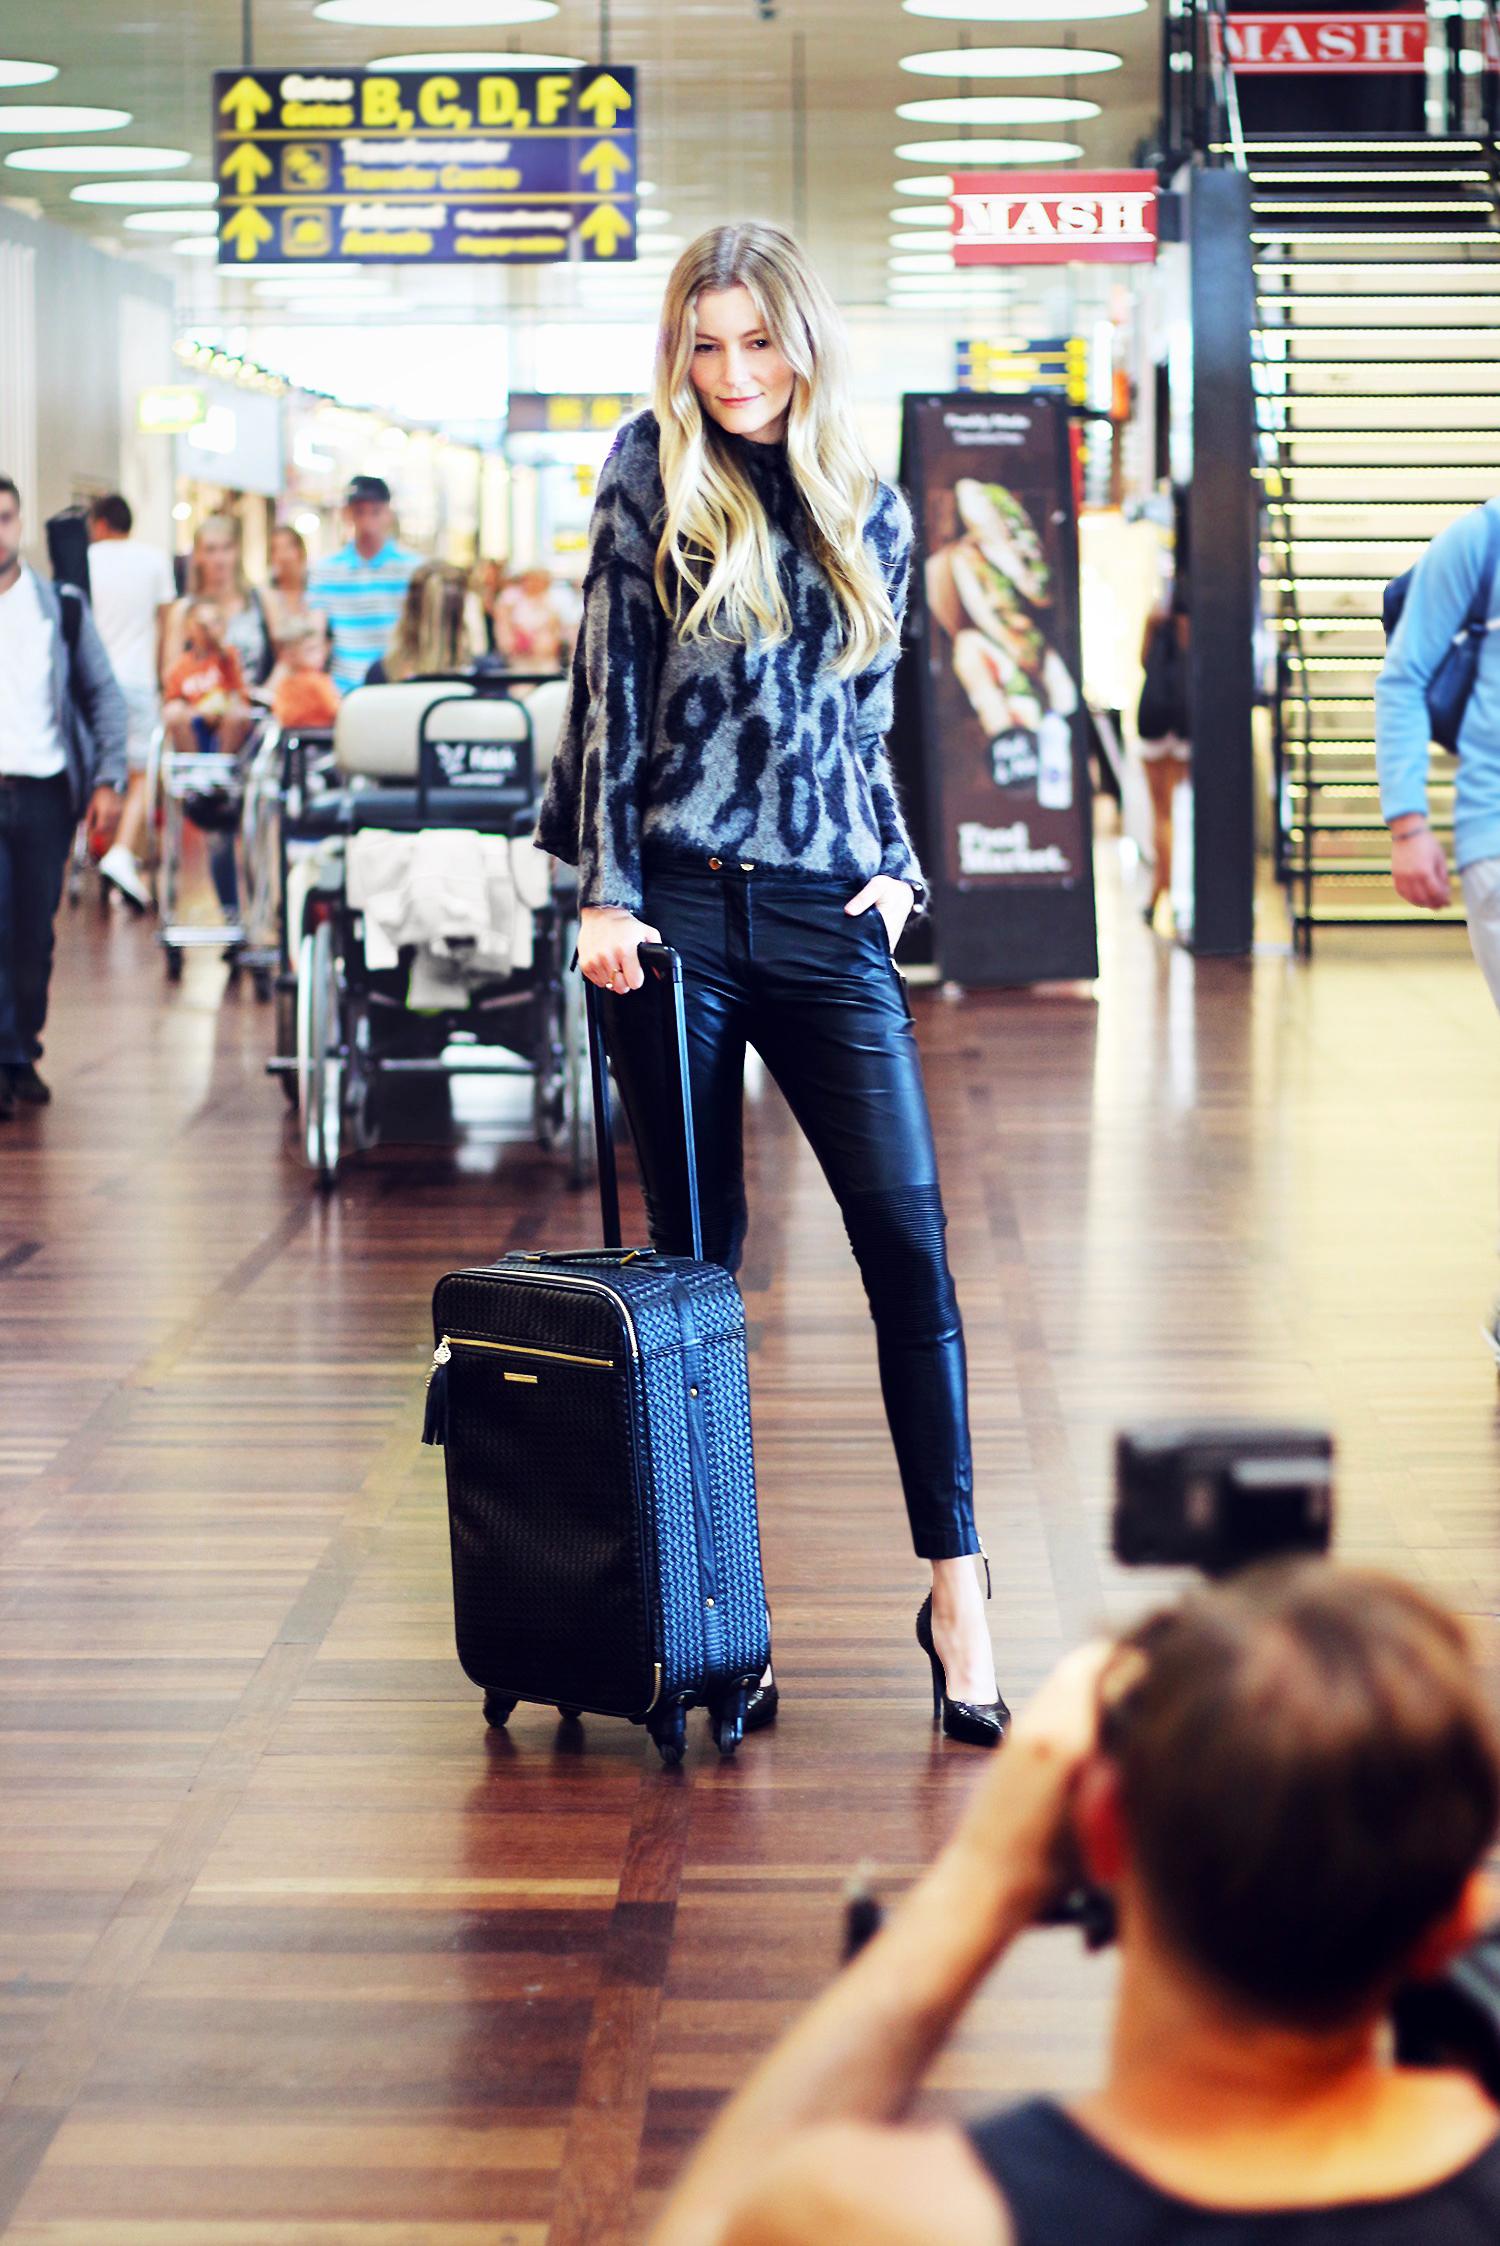 travel-style-outfit@2x